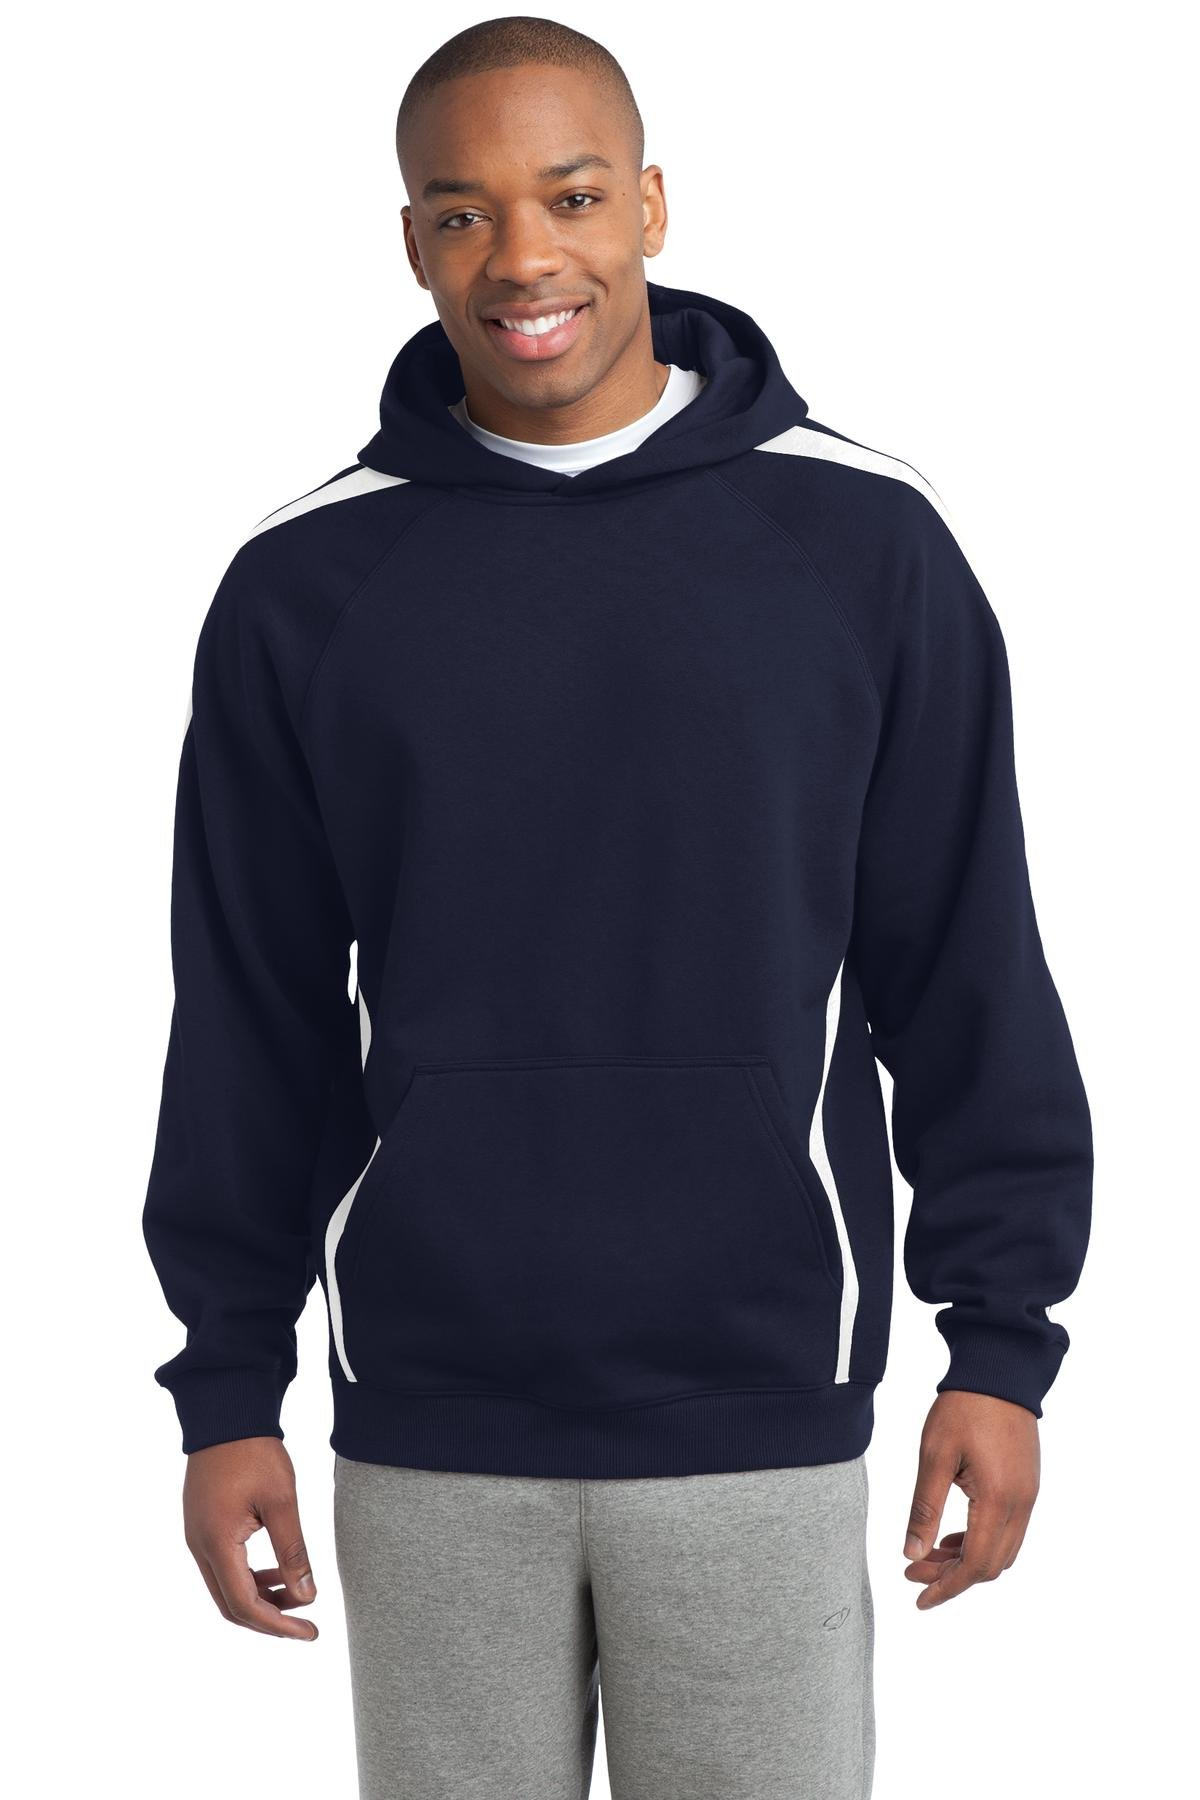 Sport-Tek Men's Sleeve Stripe Pullover Hooded Sweatshirt XS True Navy/White by Sport-Tek